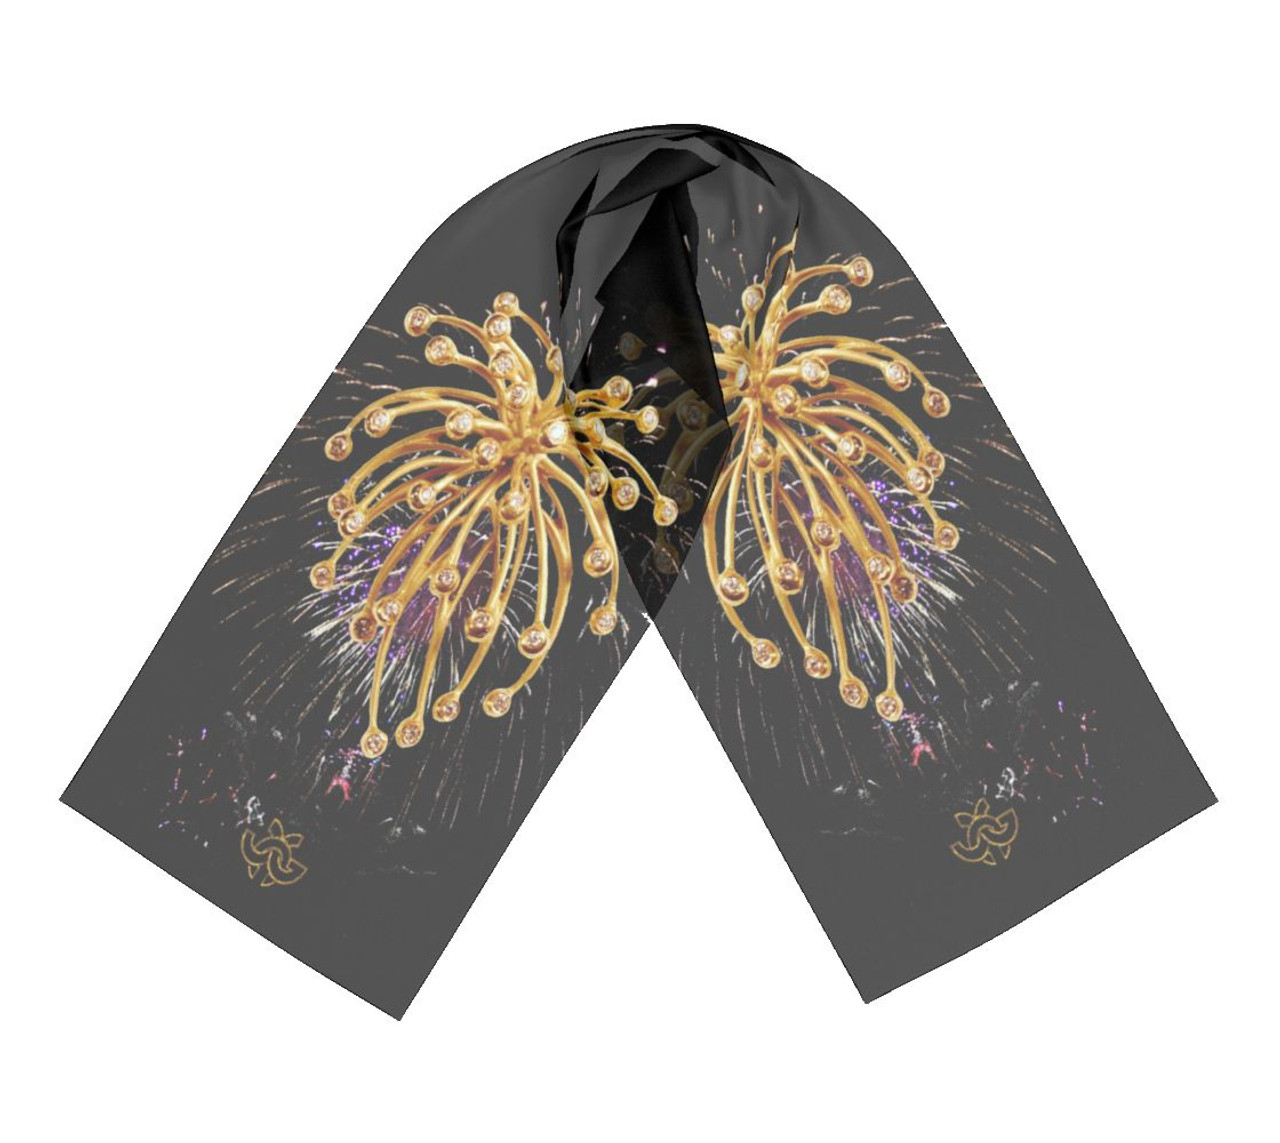 Elegant Inspirational jewelry on Silk scarves. American Made.